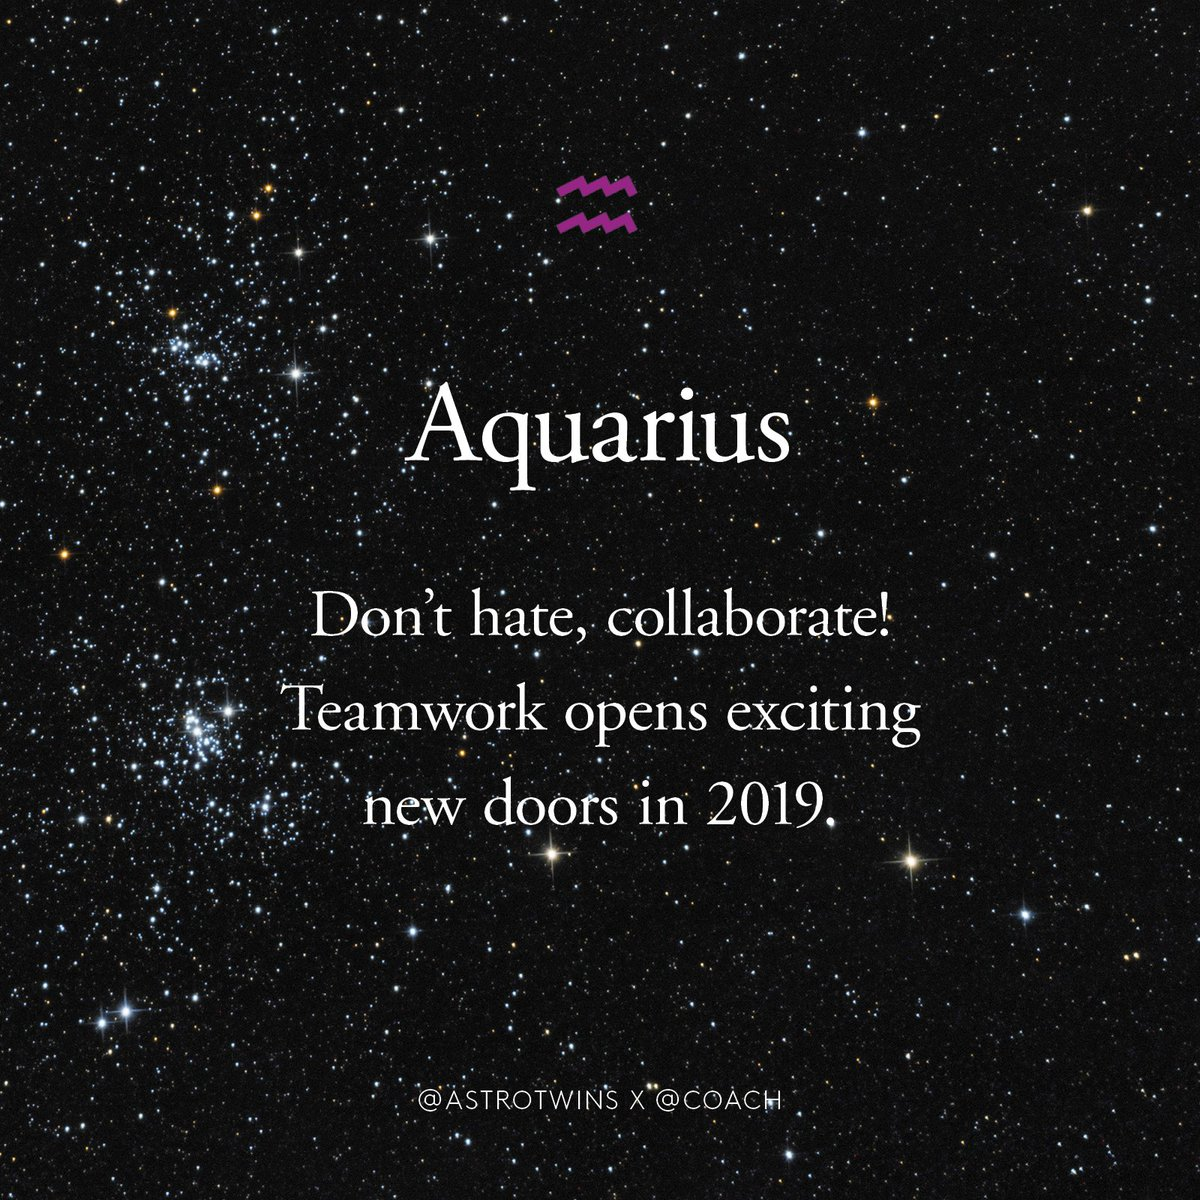 Aquarius, read your full 2019 horoscope by the @astrotwins and shop your sign: https://t.co/zHTmd9gn6x #CoachNY